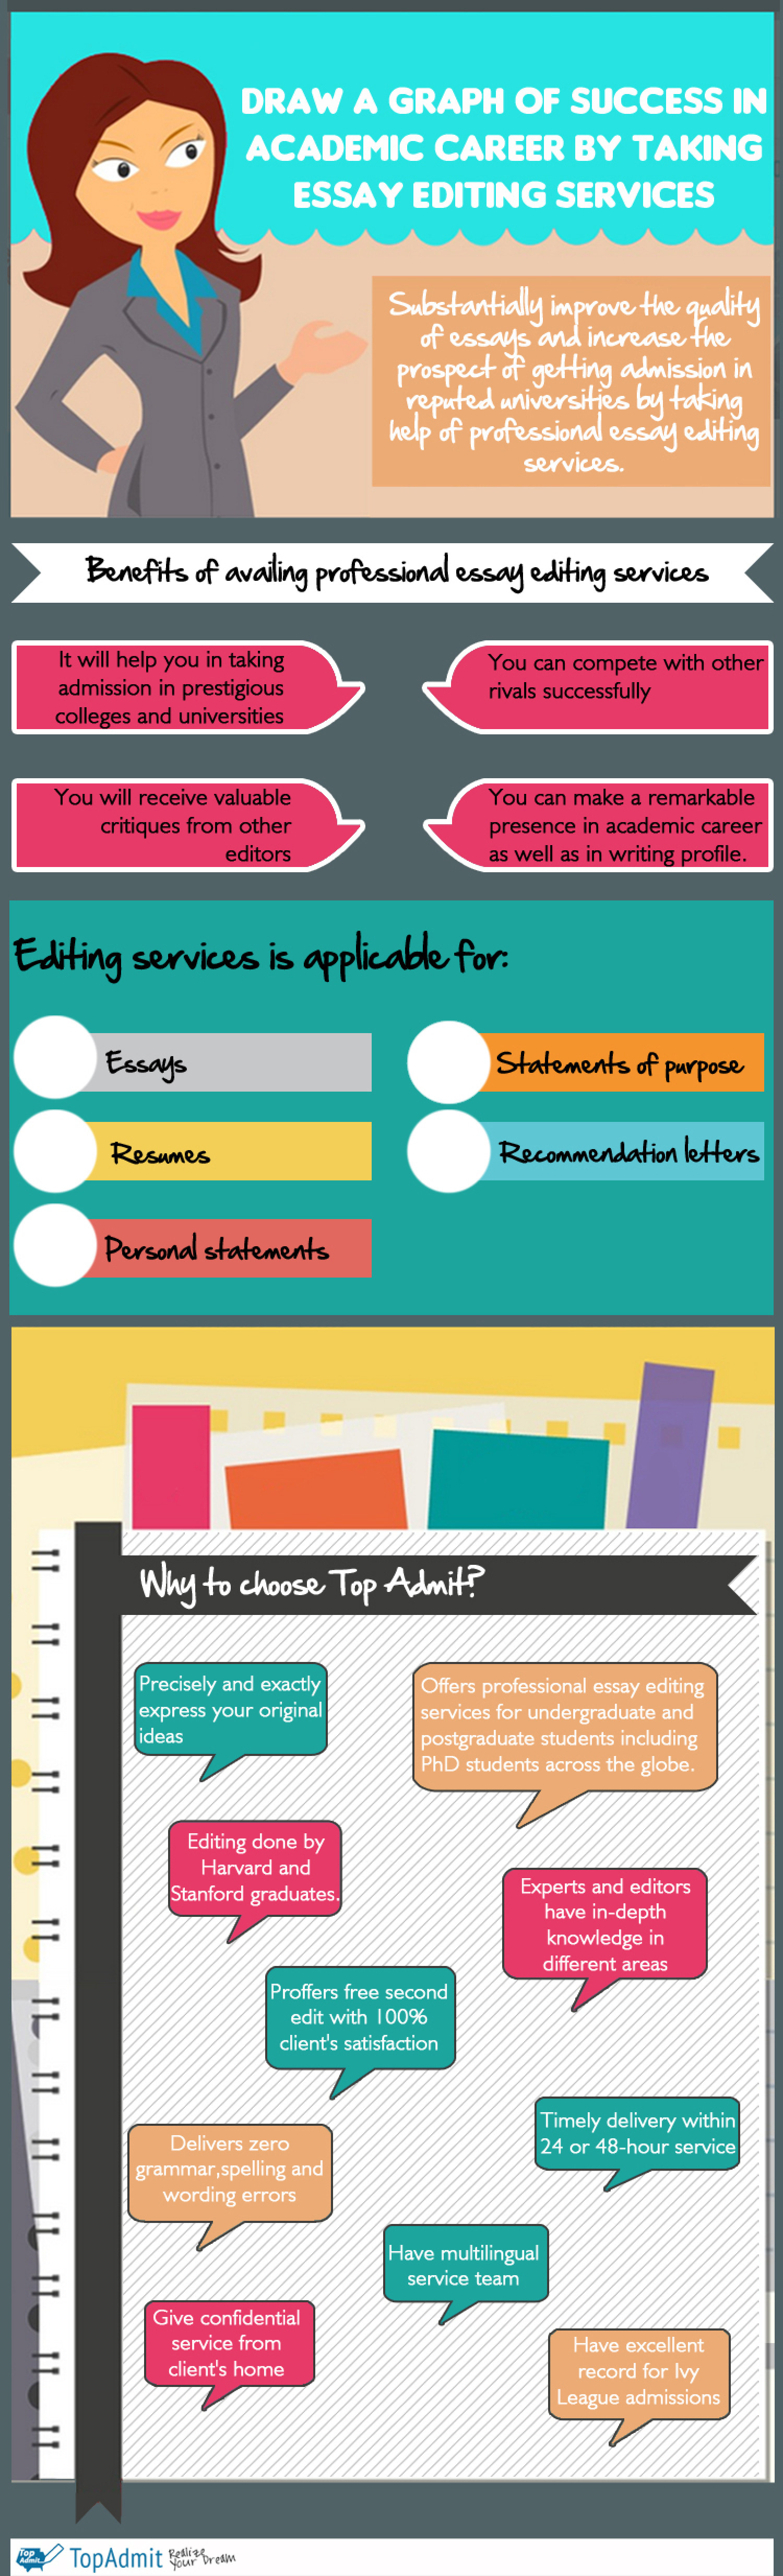 Paper Editing Services and Academic Essay Proofreading Services